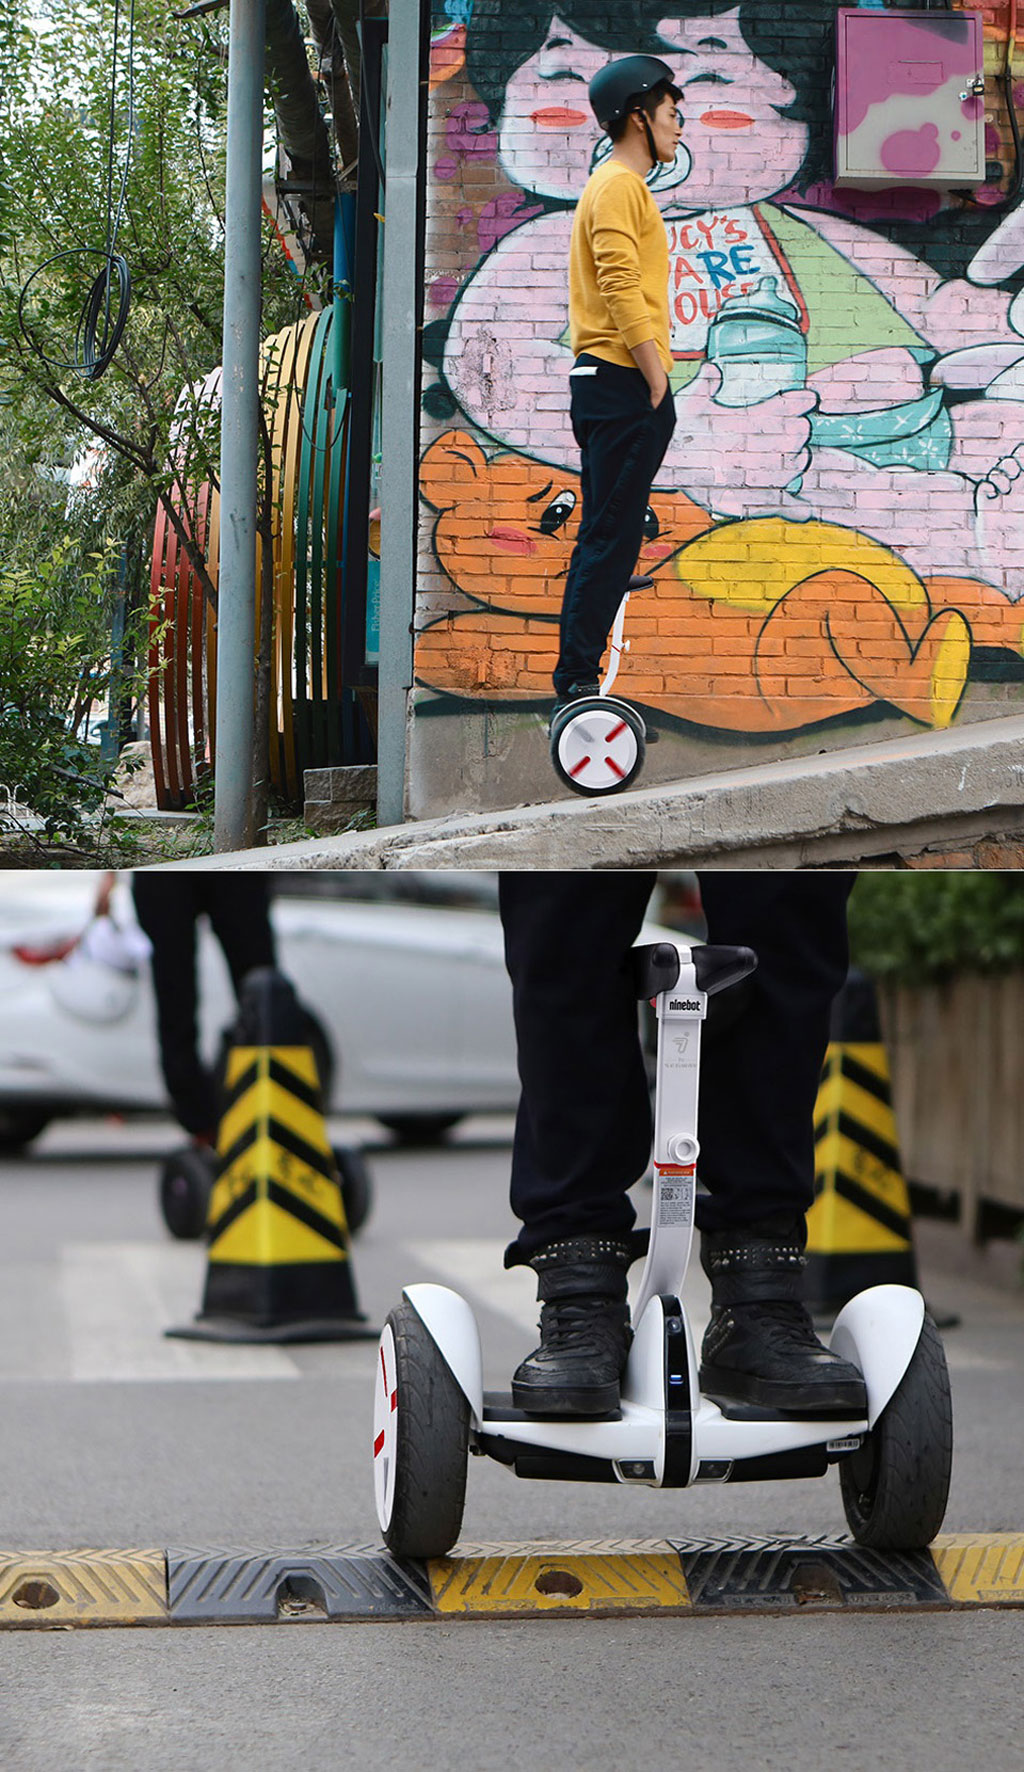 Ninebot Mini Self Balancing Scooter Pro Black Full Specifications Xiaomi Cause Some Problems For Scooters The Is Equipped With Dual Motor That Was Engineered To Overcome Obstacles 15